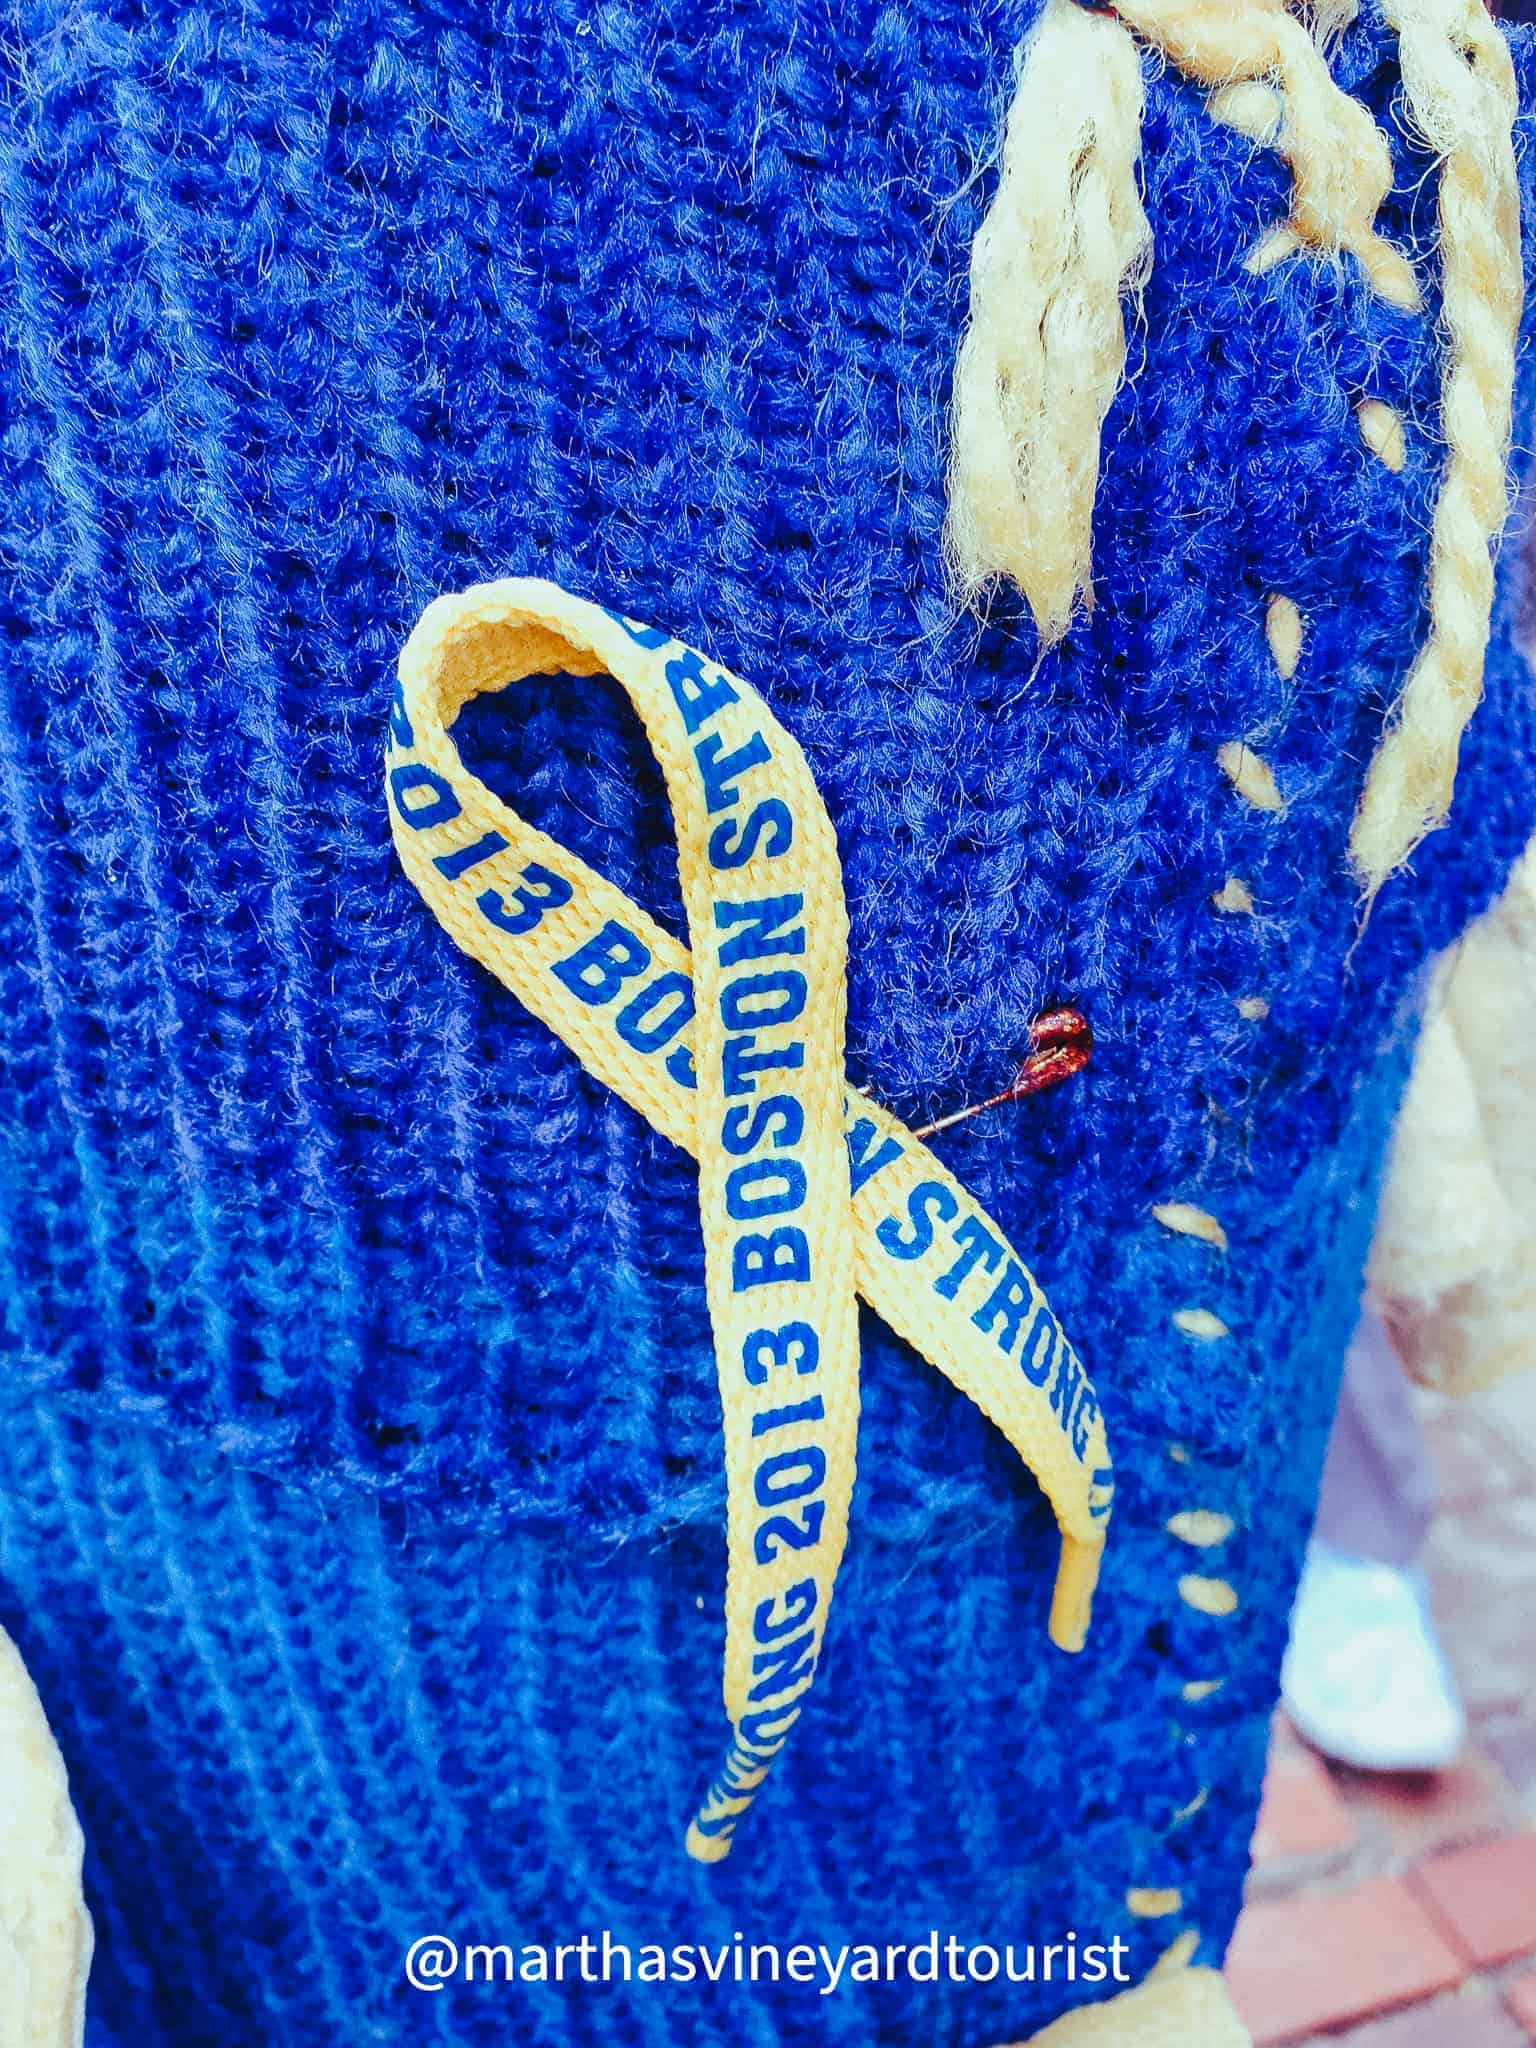 Boston Strong ribbon commemorating the Boston Marathon bombing in 2013